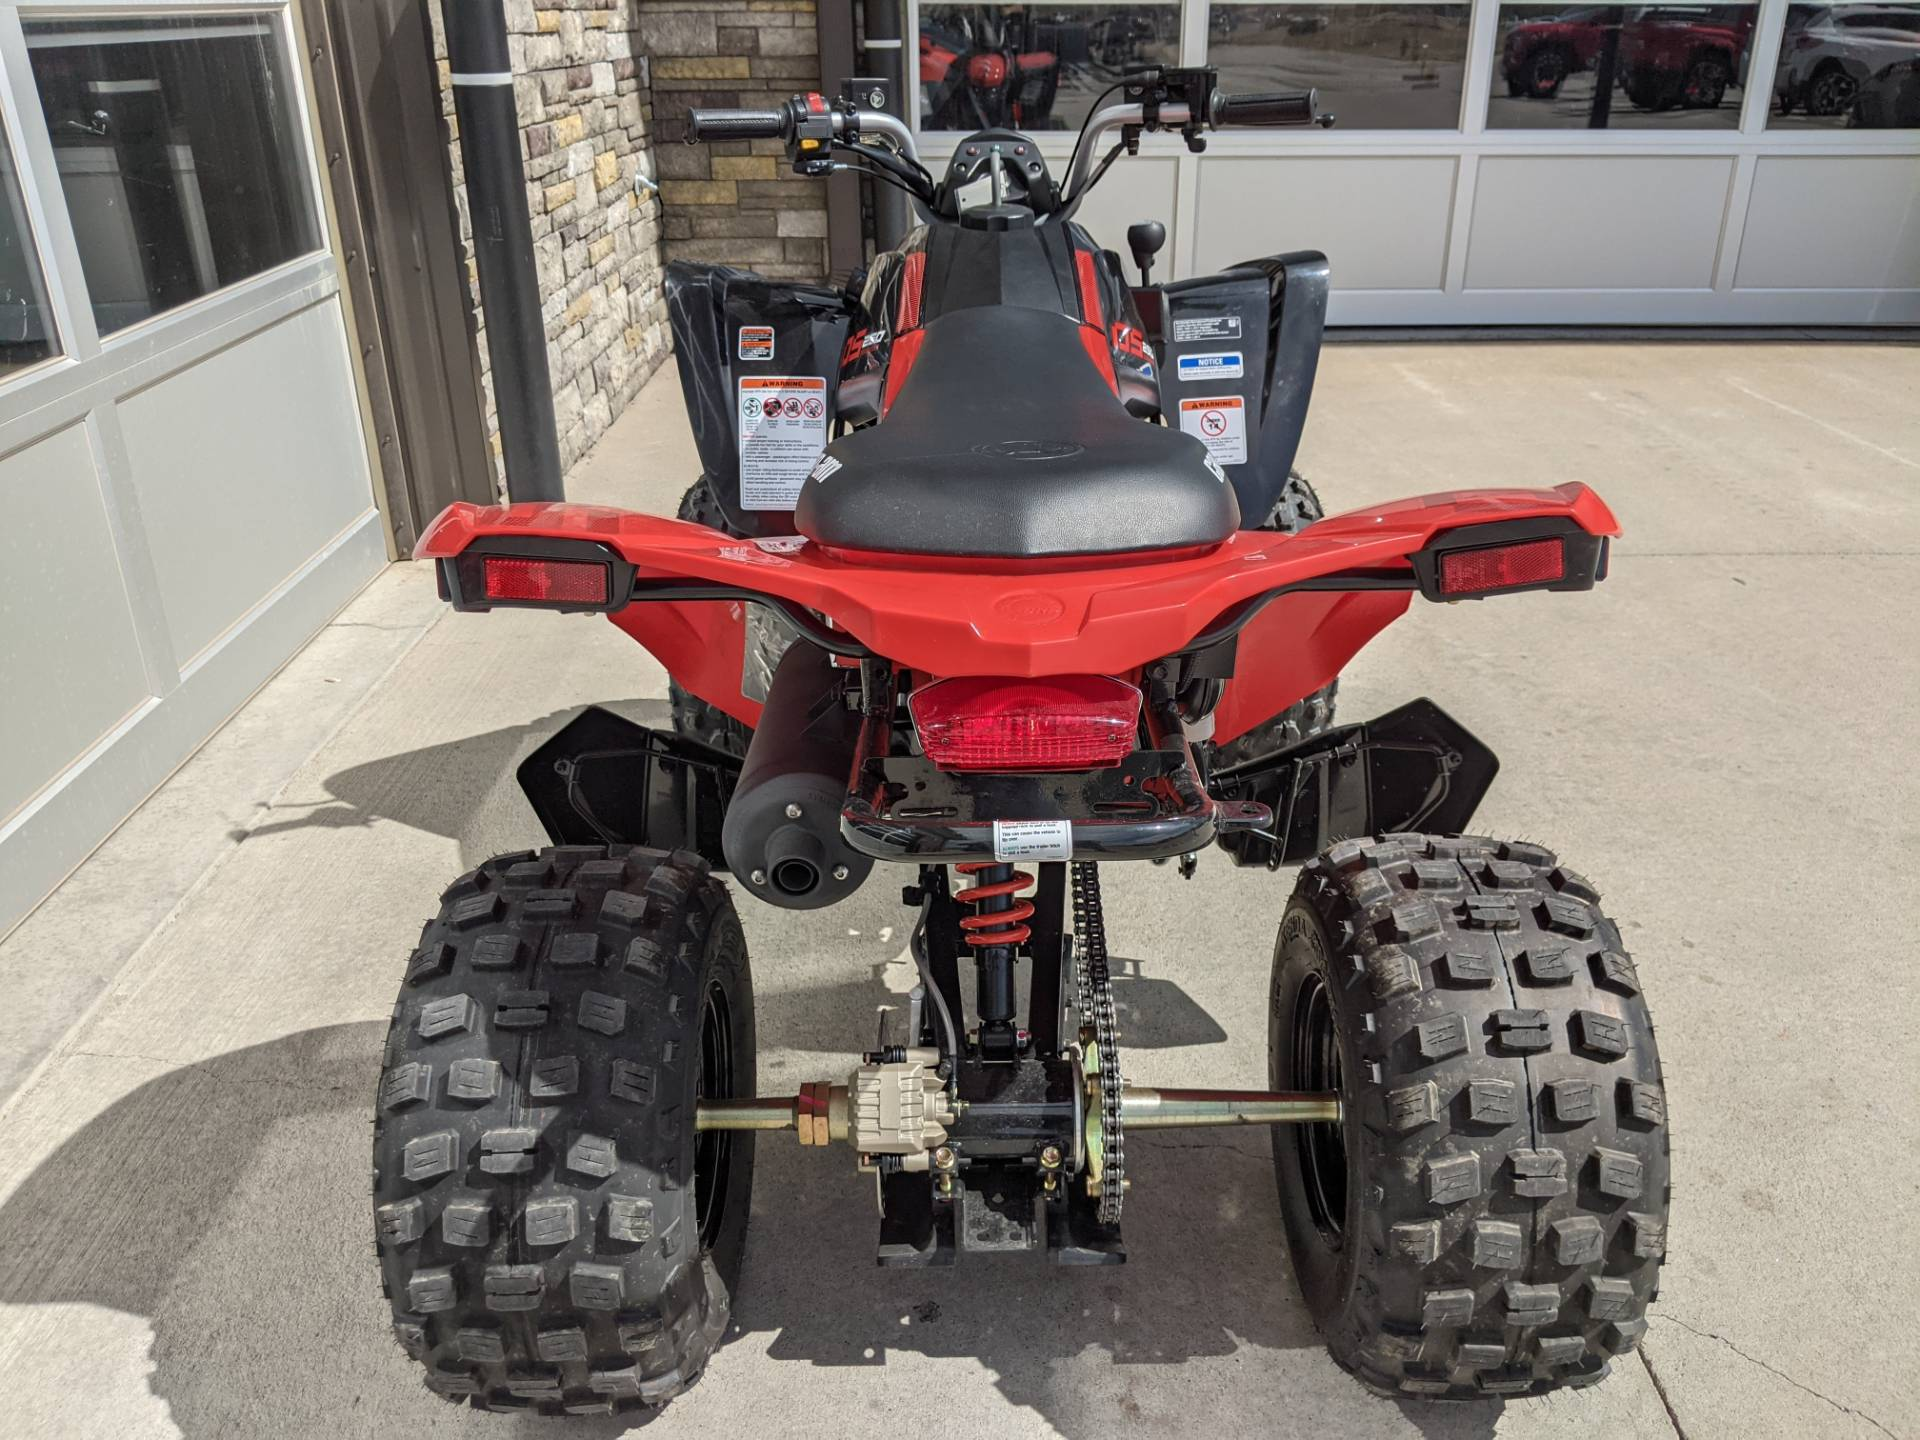 2021 Can-Am DS 250 in Rapid City, South Dakota - Photo 6